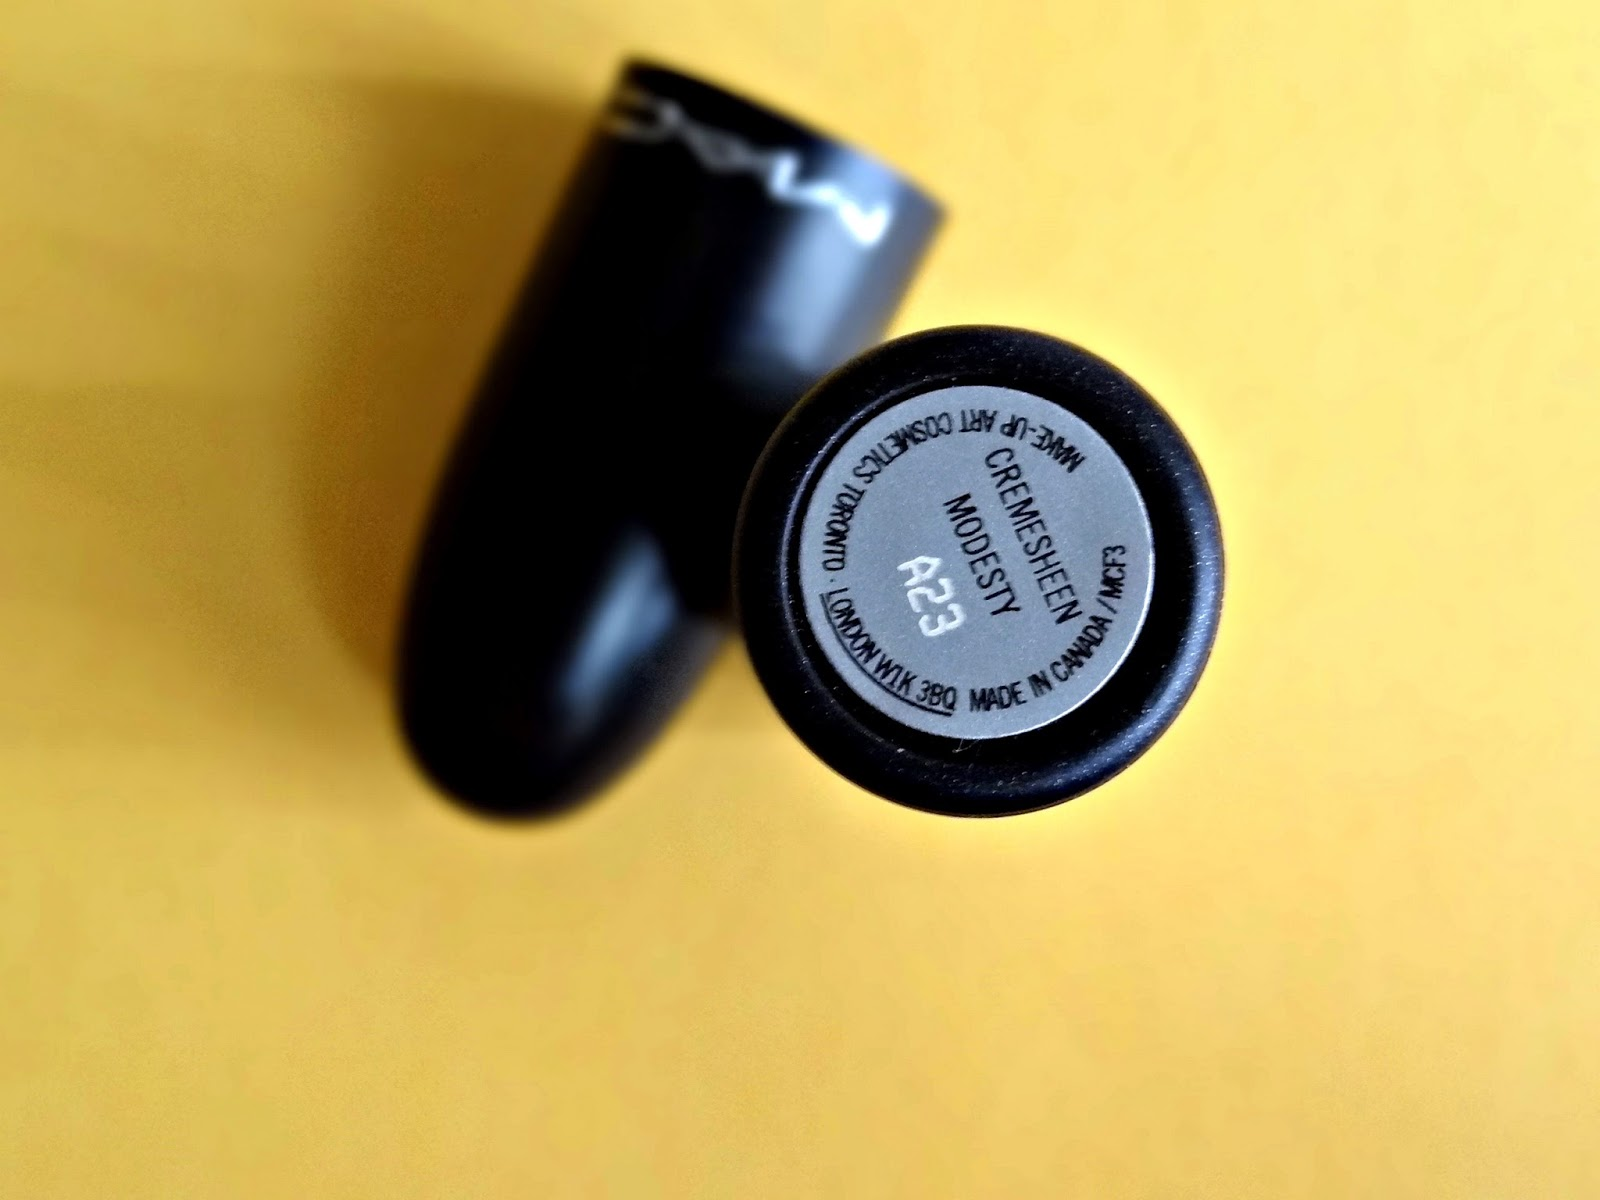 MAC Cremesheen Lipstick in Modesty